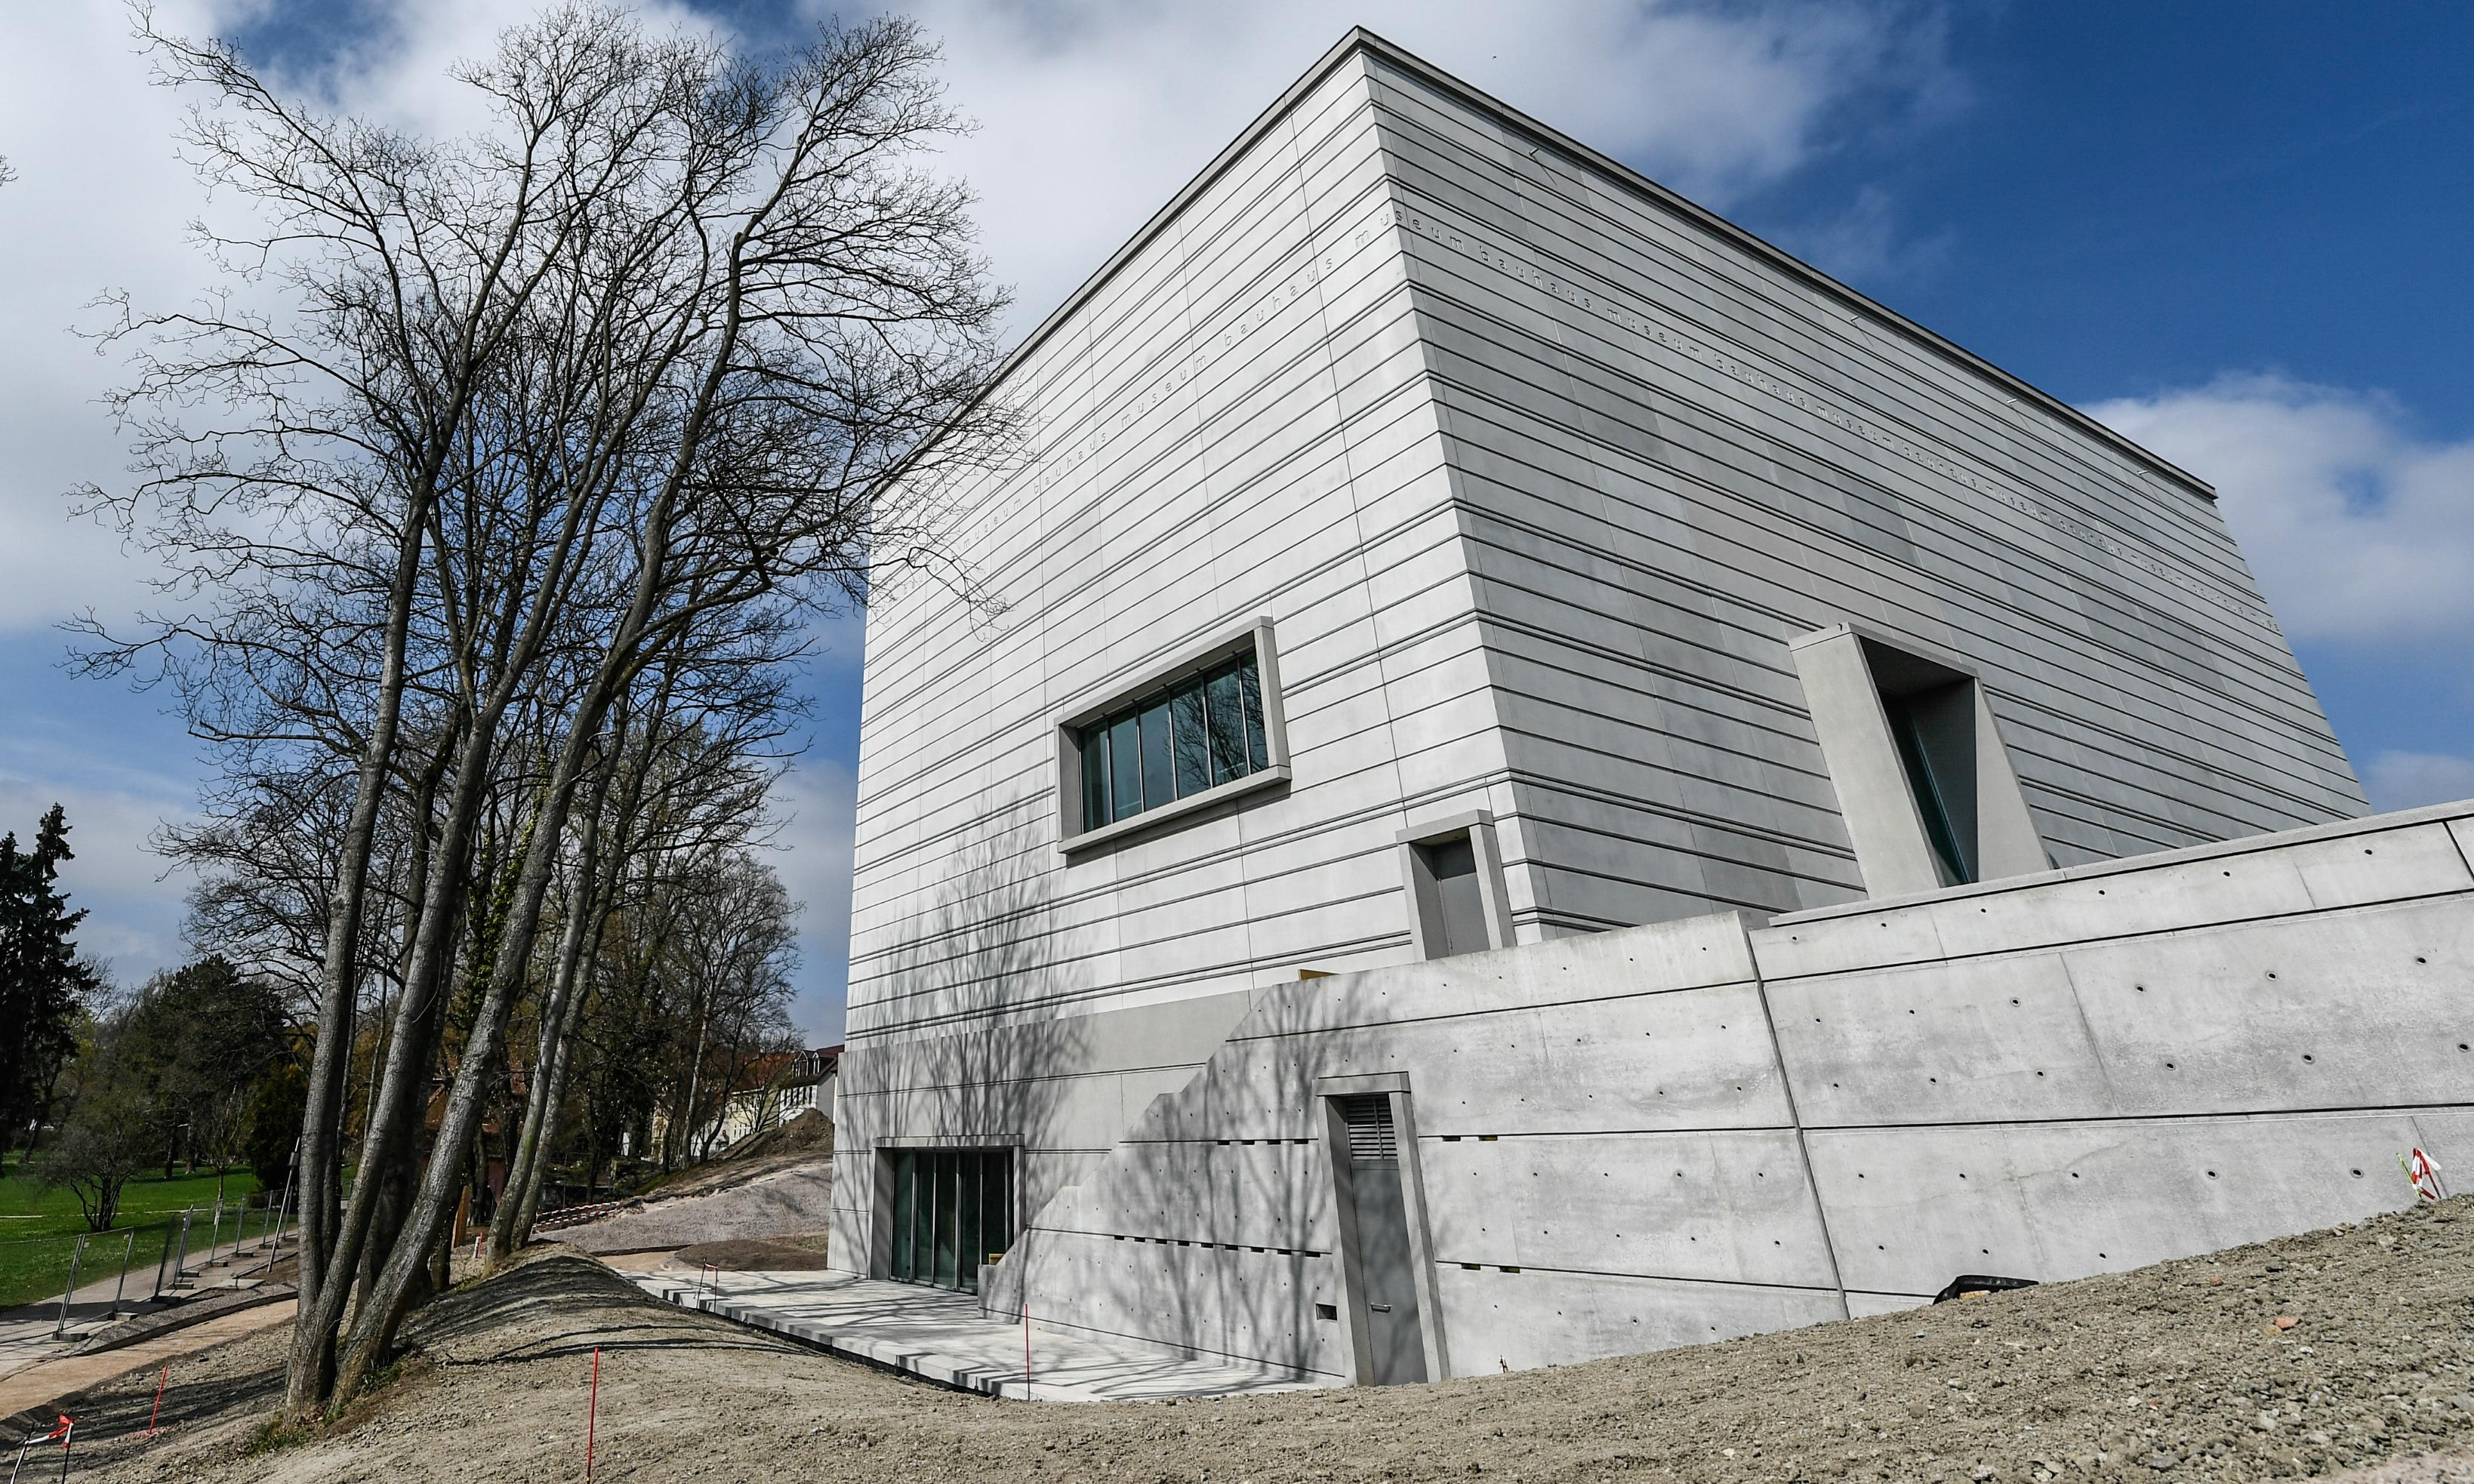 A bunker for Bauhaus: design school comes home to Weimar